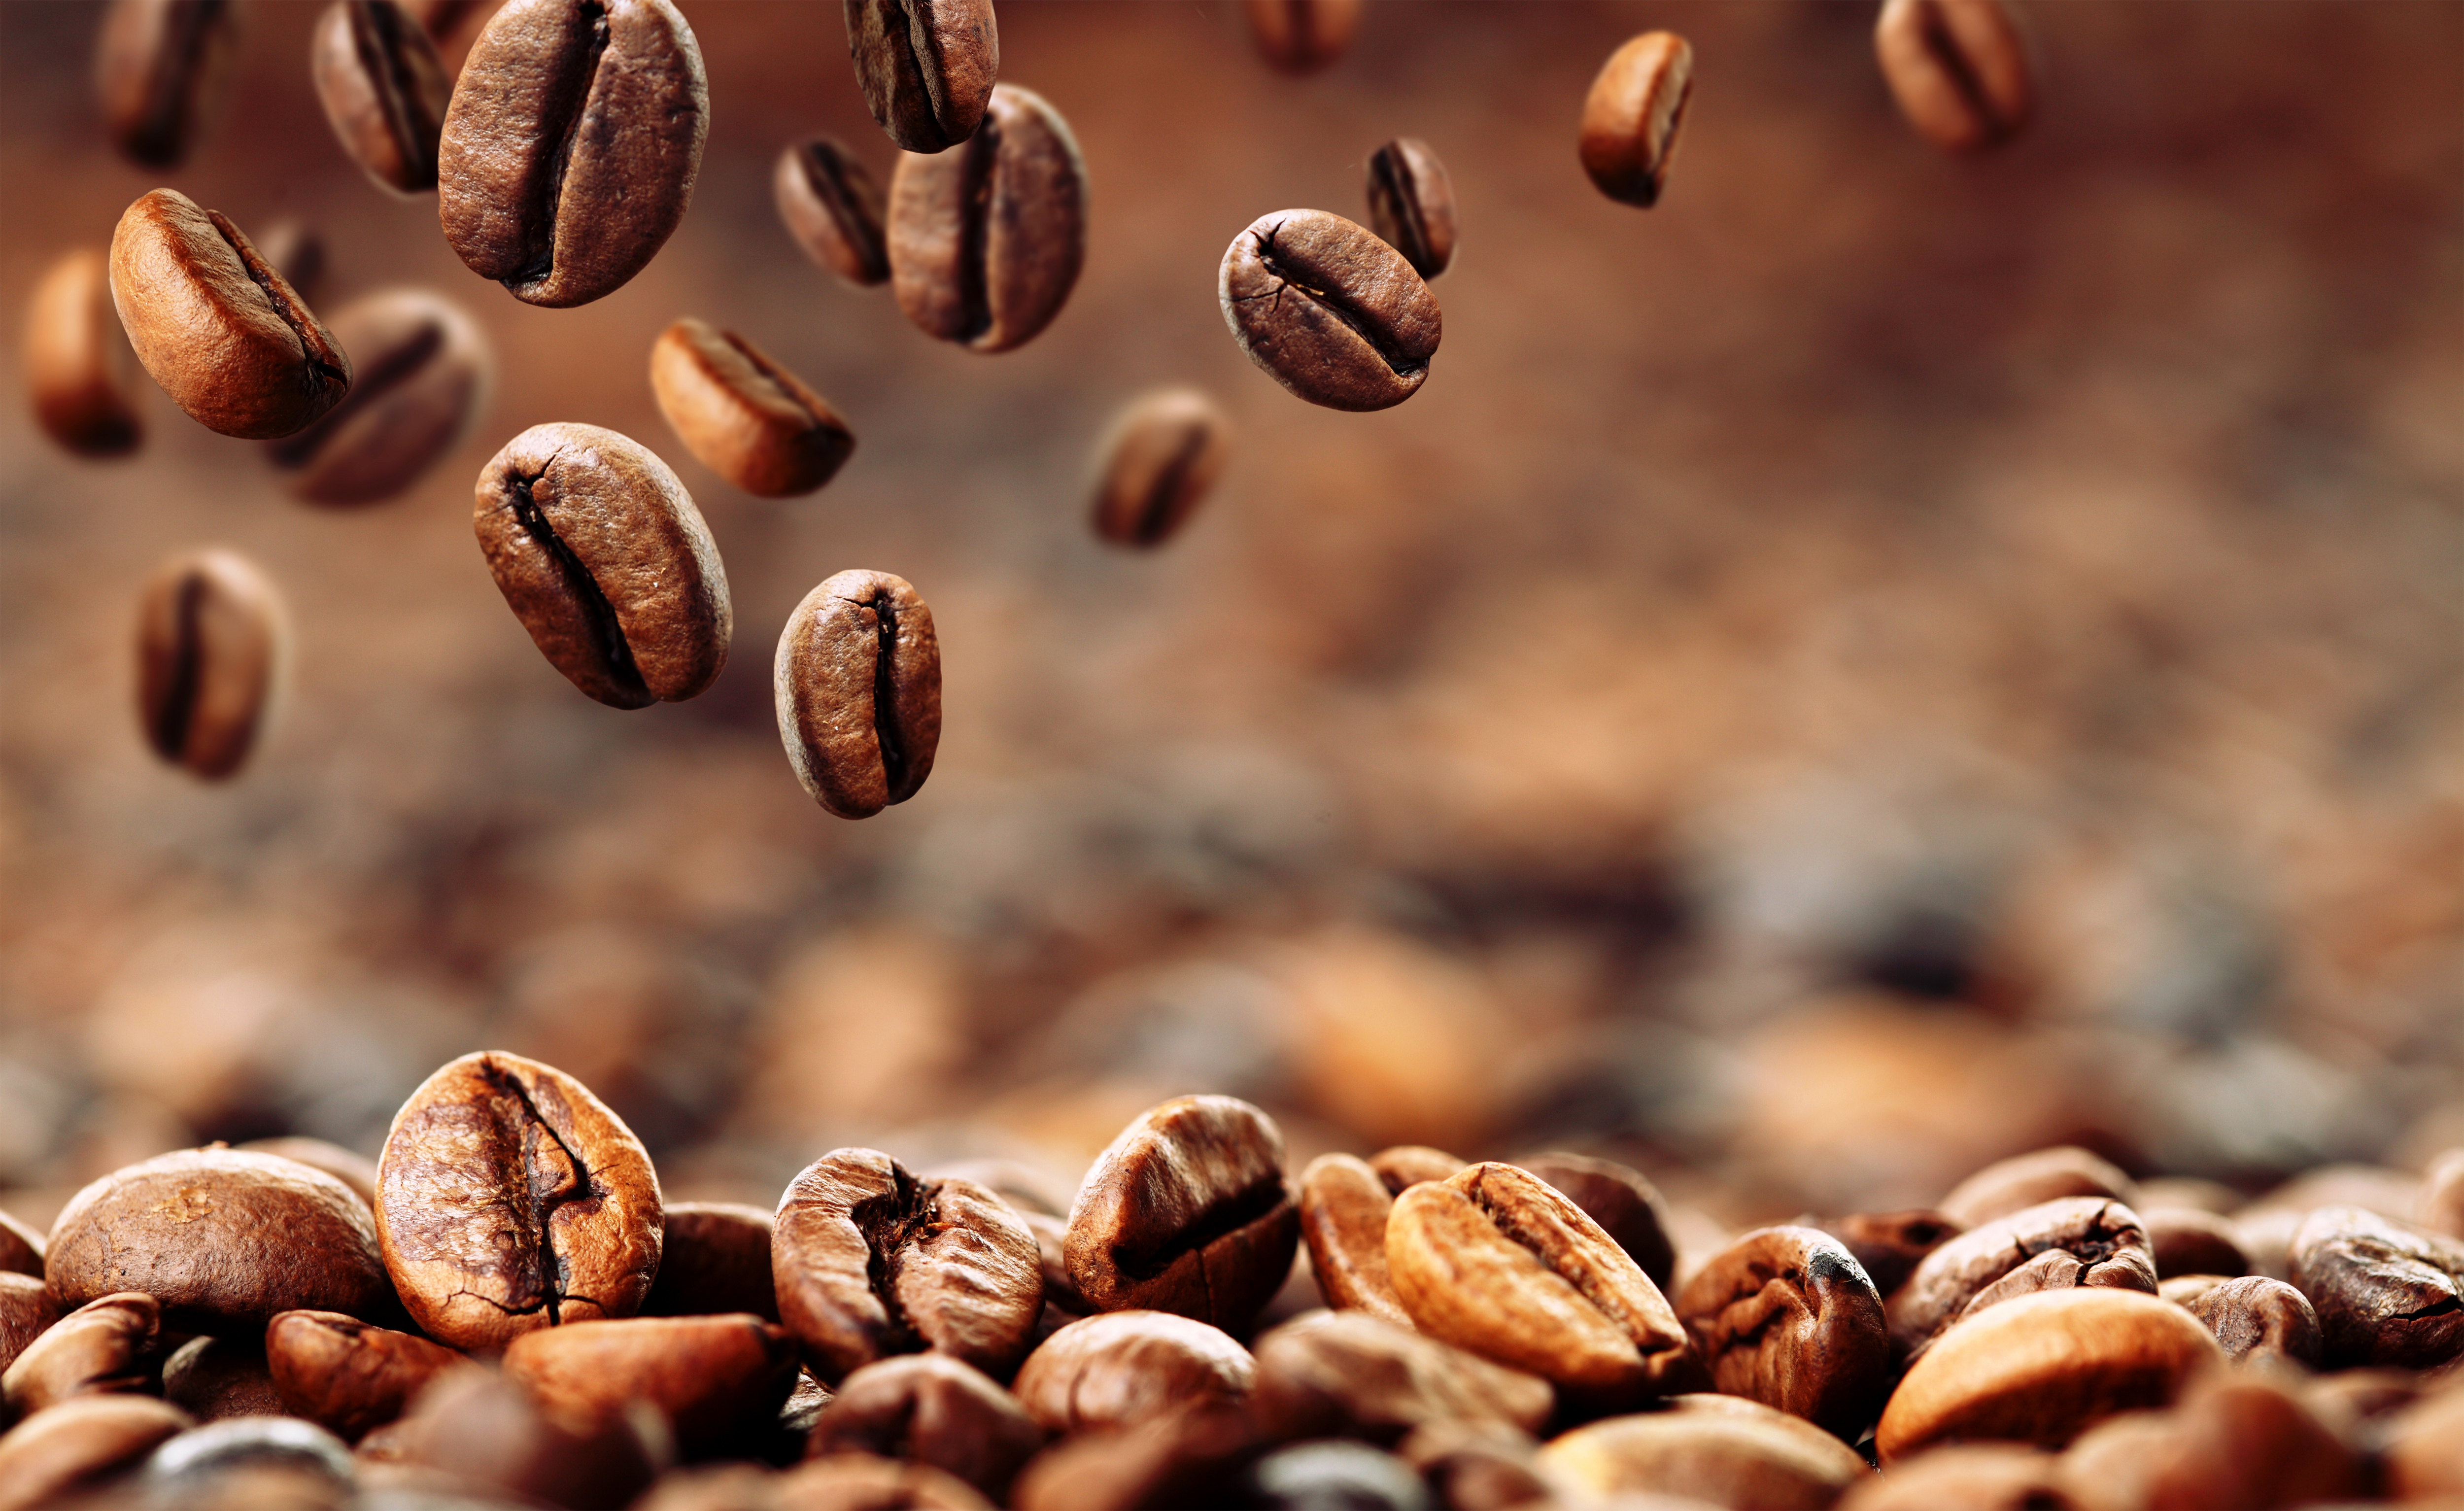 Coffee Beans Background Gallery Yopriceville   High Quality 5000x3066